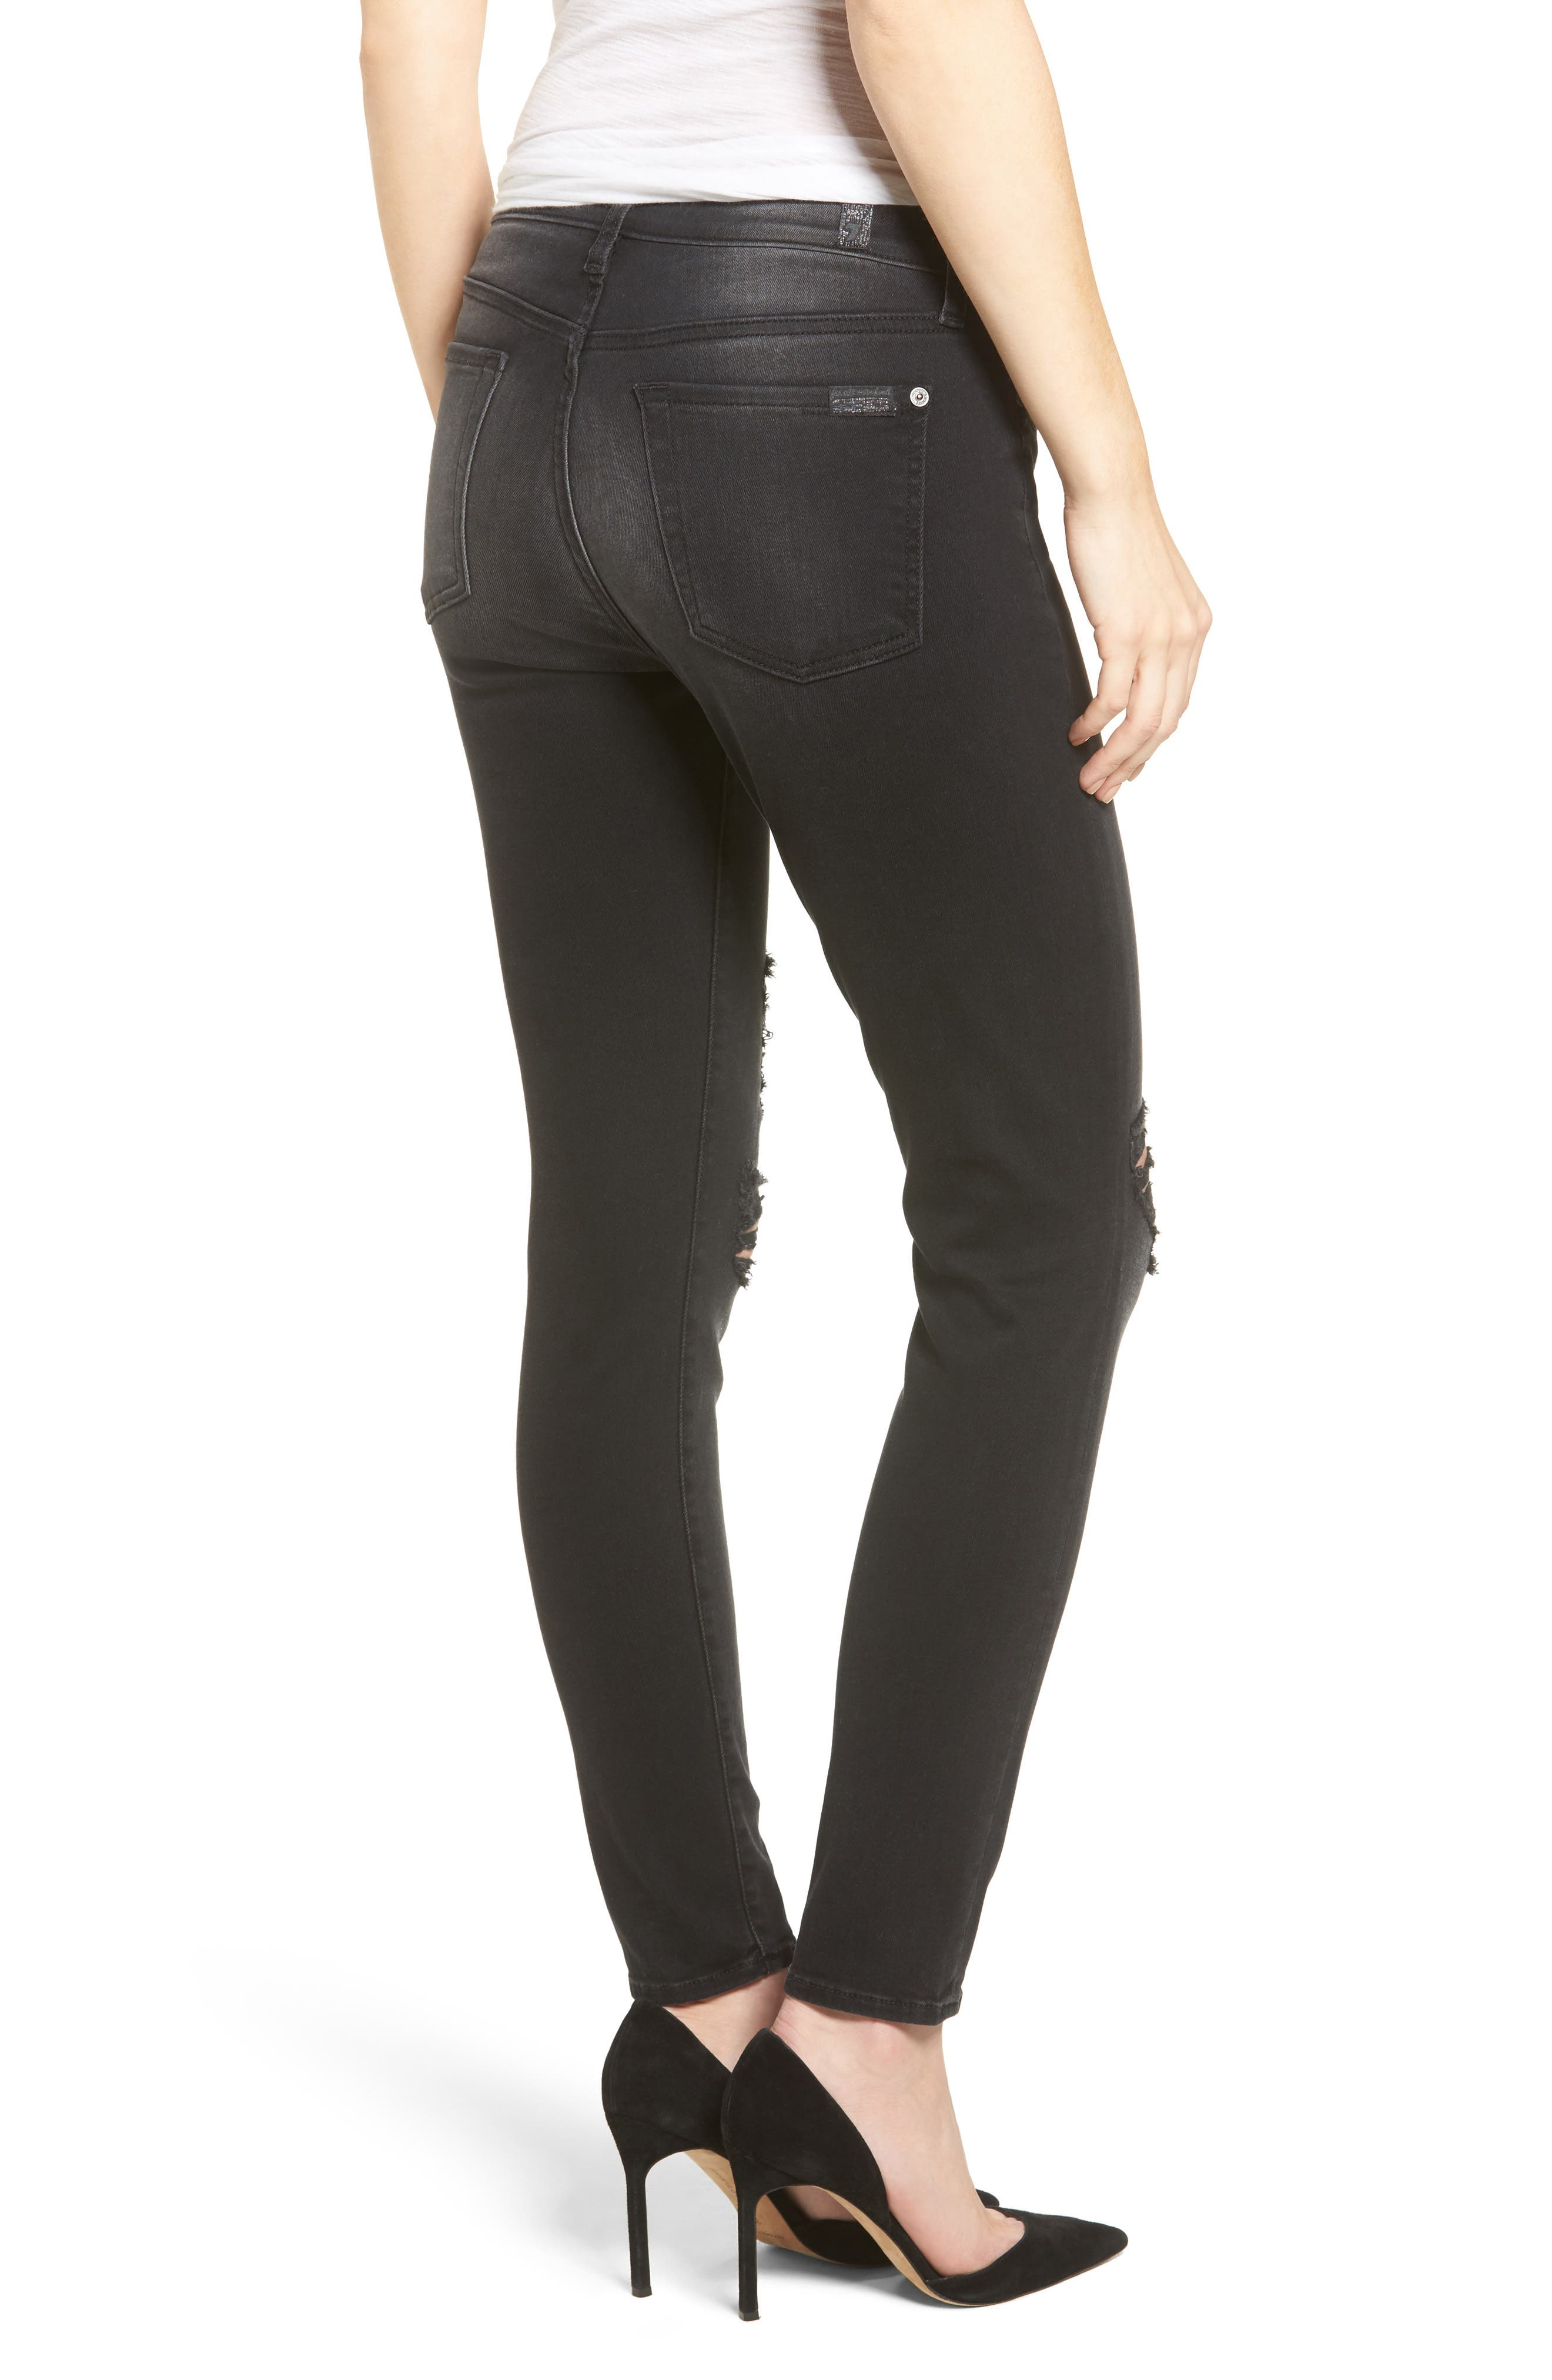 Seven7 The Ankle Skinny Jeans,                             Alternate thumbnail 2, color,                             004